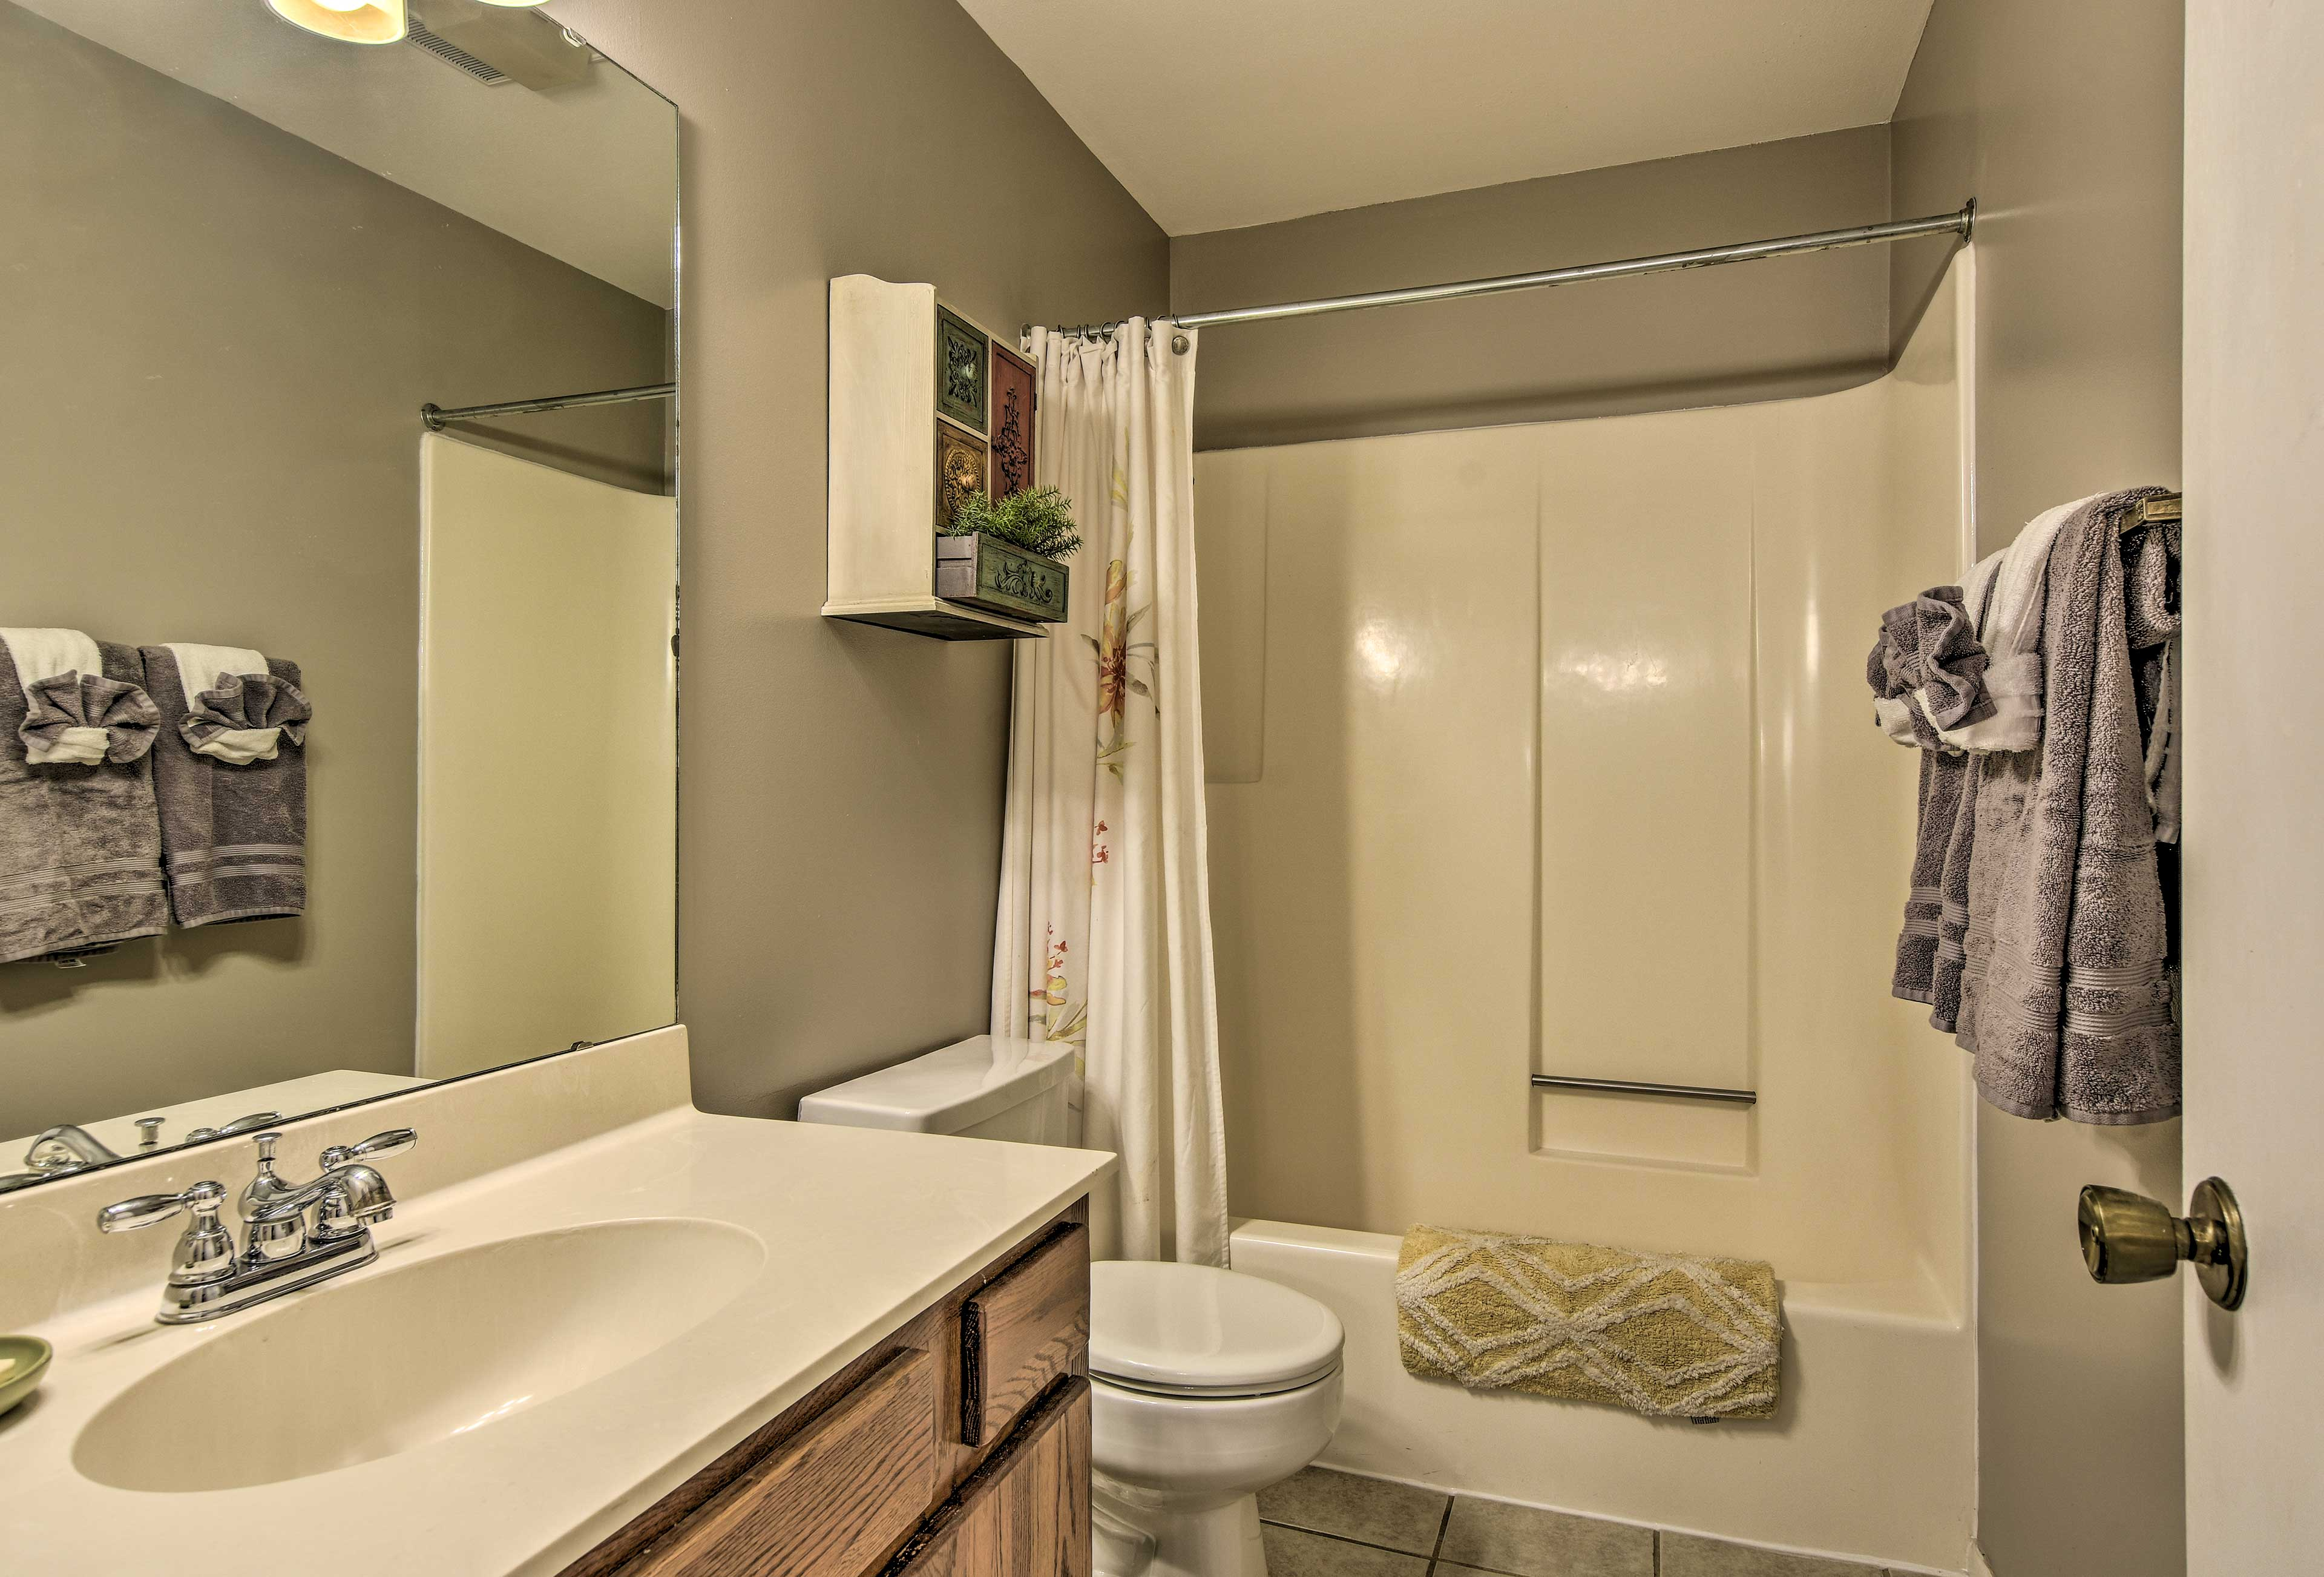 With 2 bathrooms, there's no reason to fight over space to get ready.